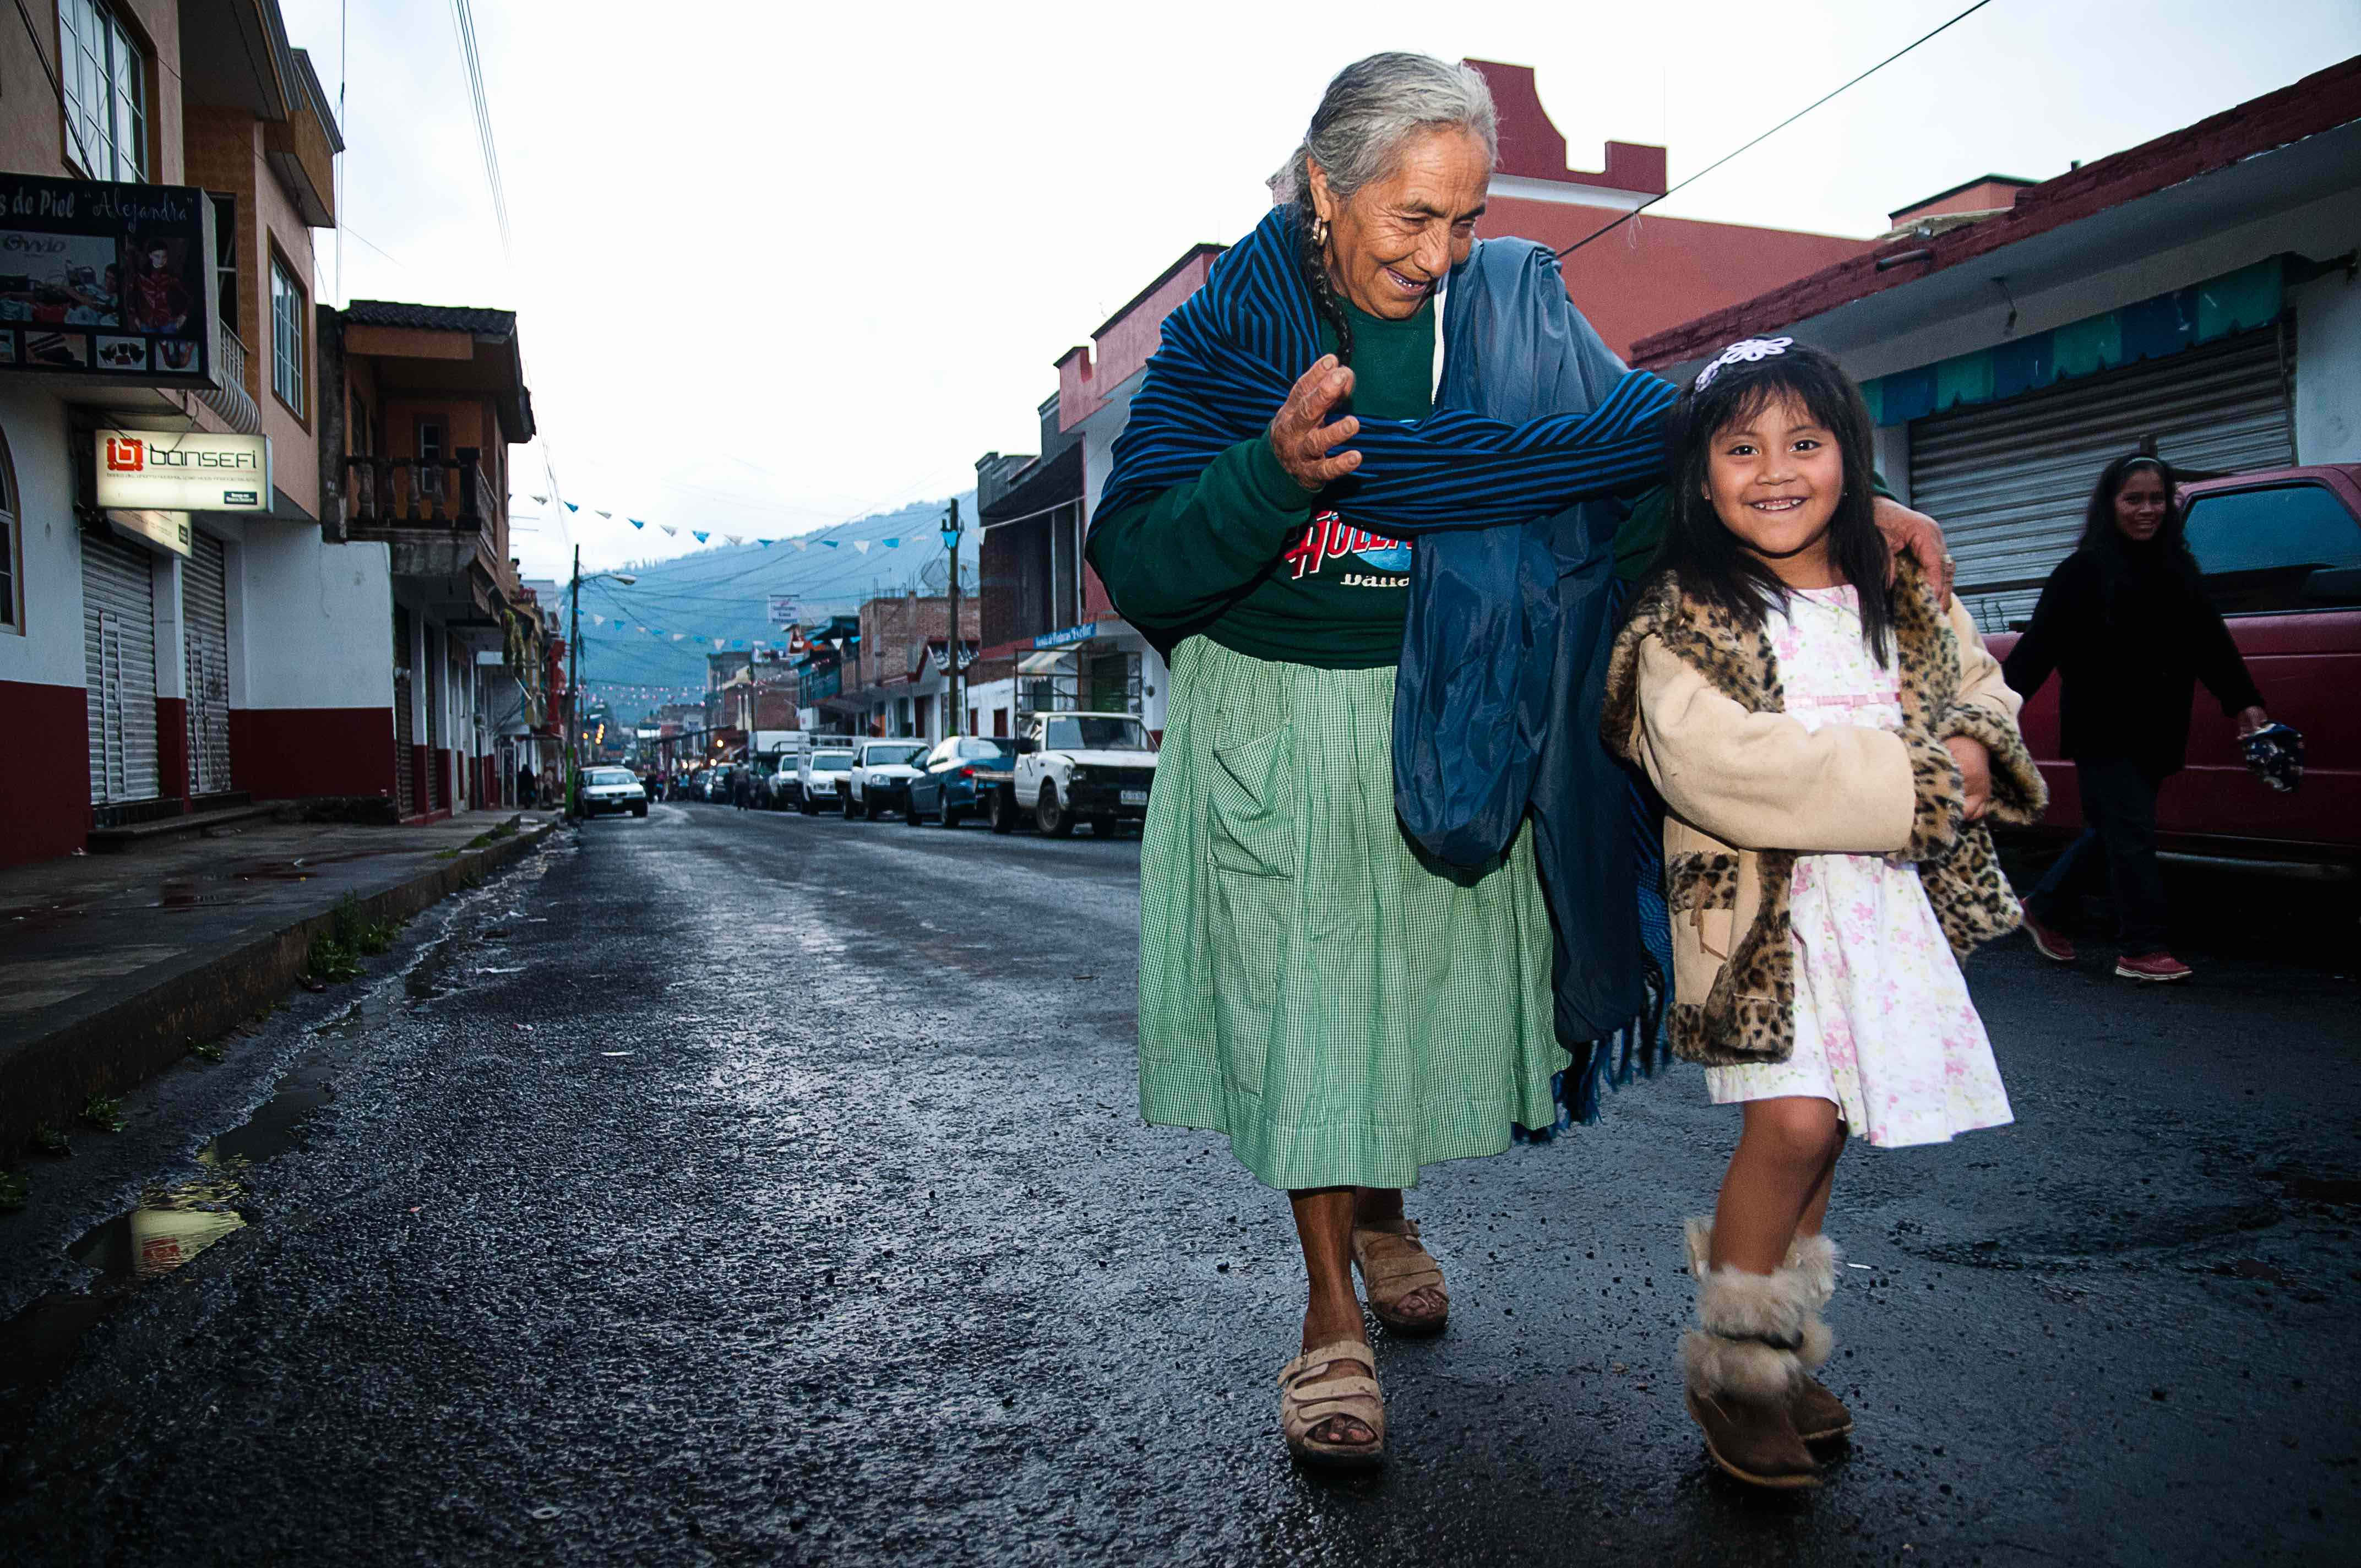 Thanks to Indigenous Women, This Mexican Town Has Its First Self-Governed Council